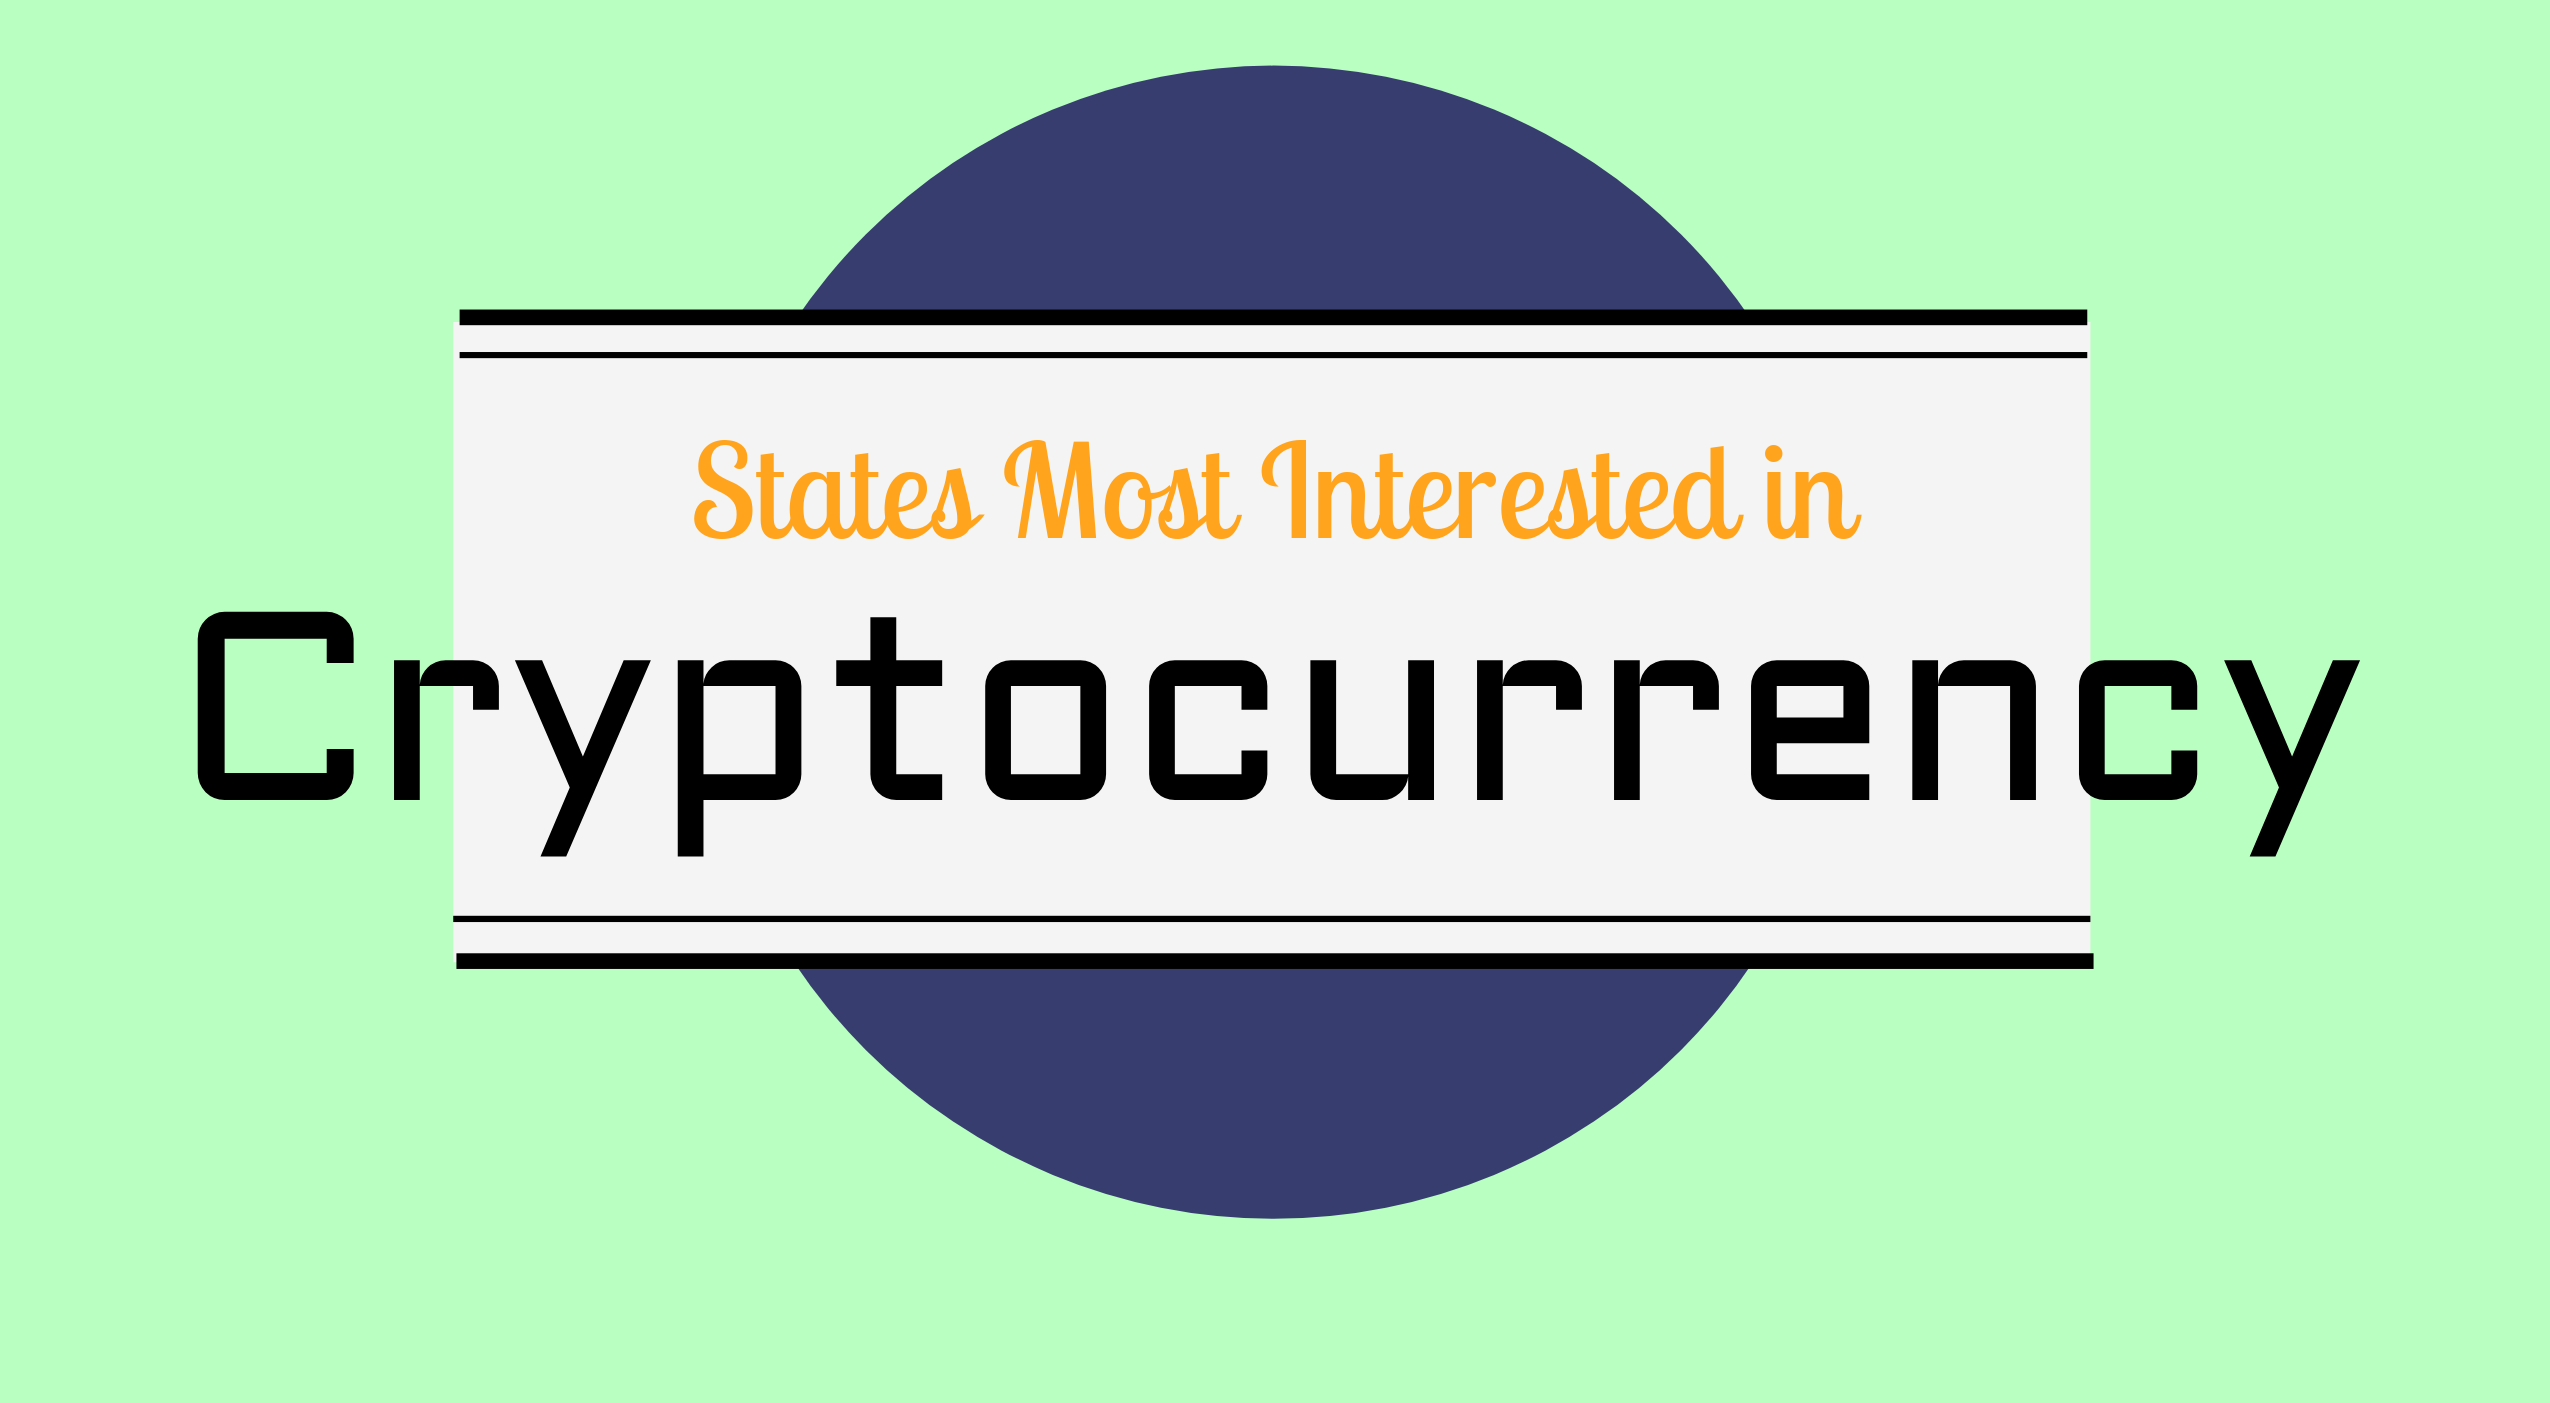 States Most Interested in Bitcoin and Crypto